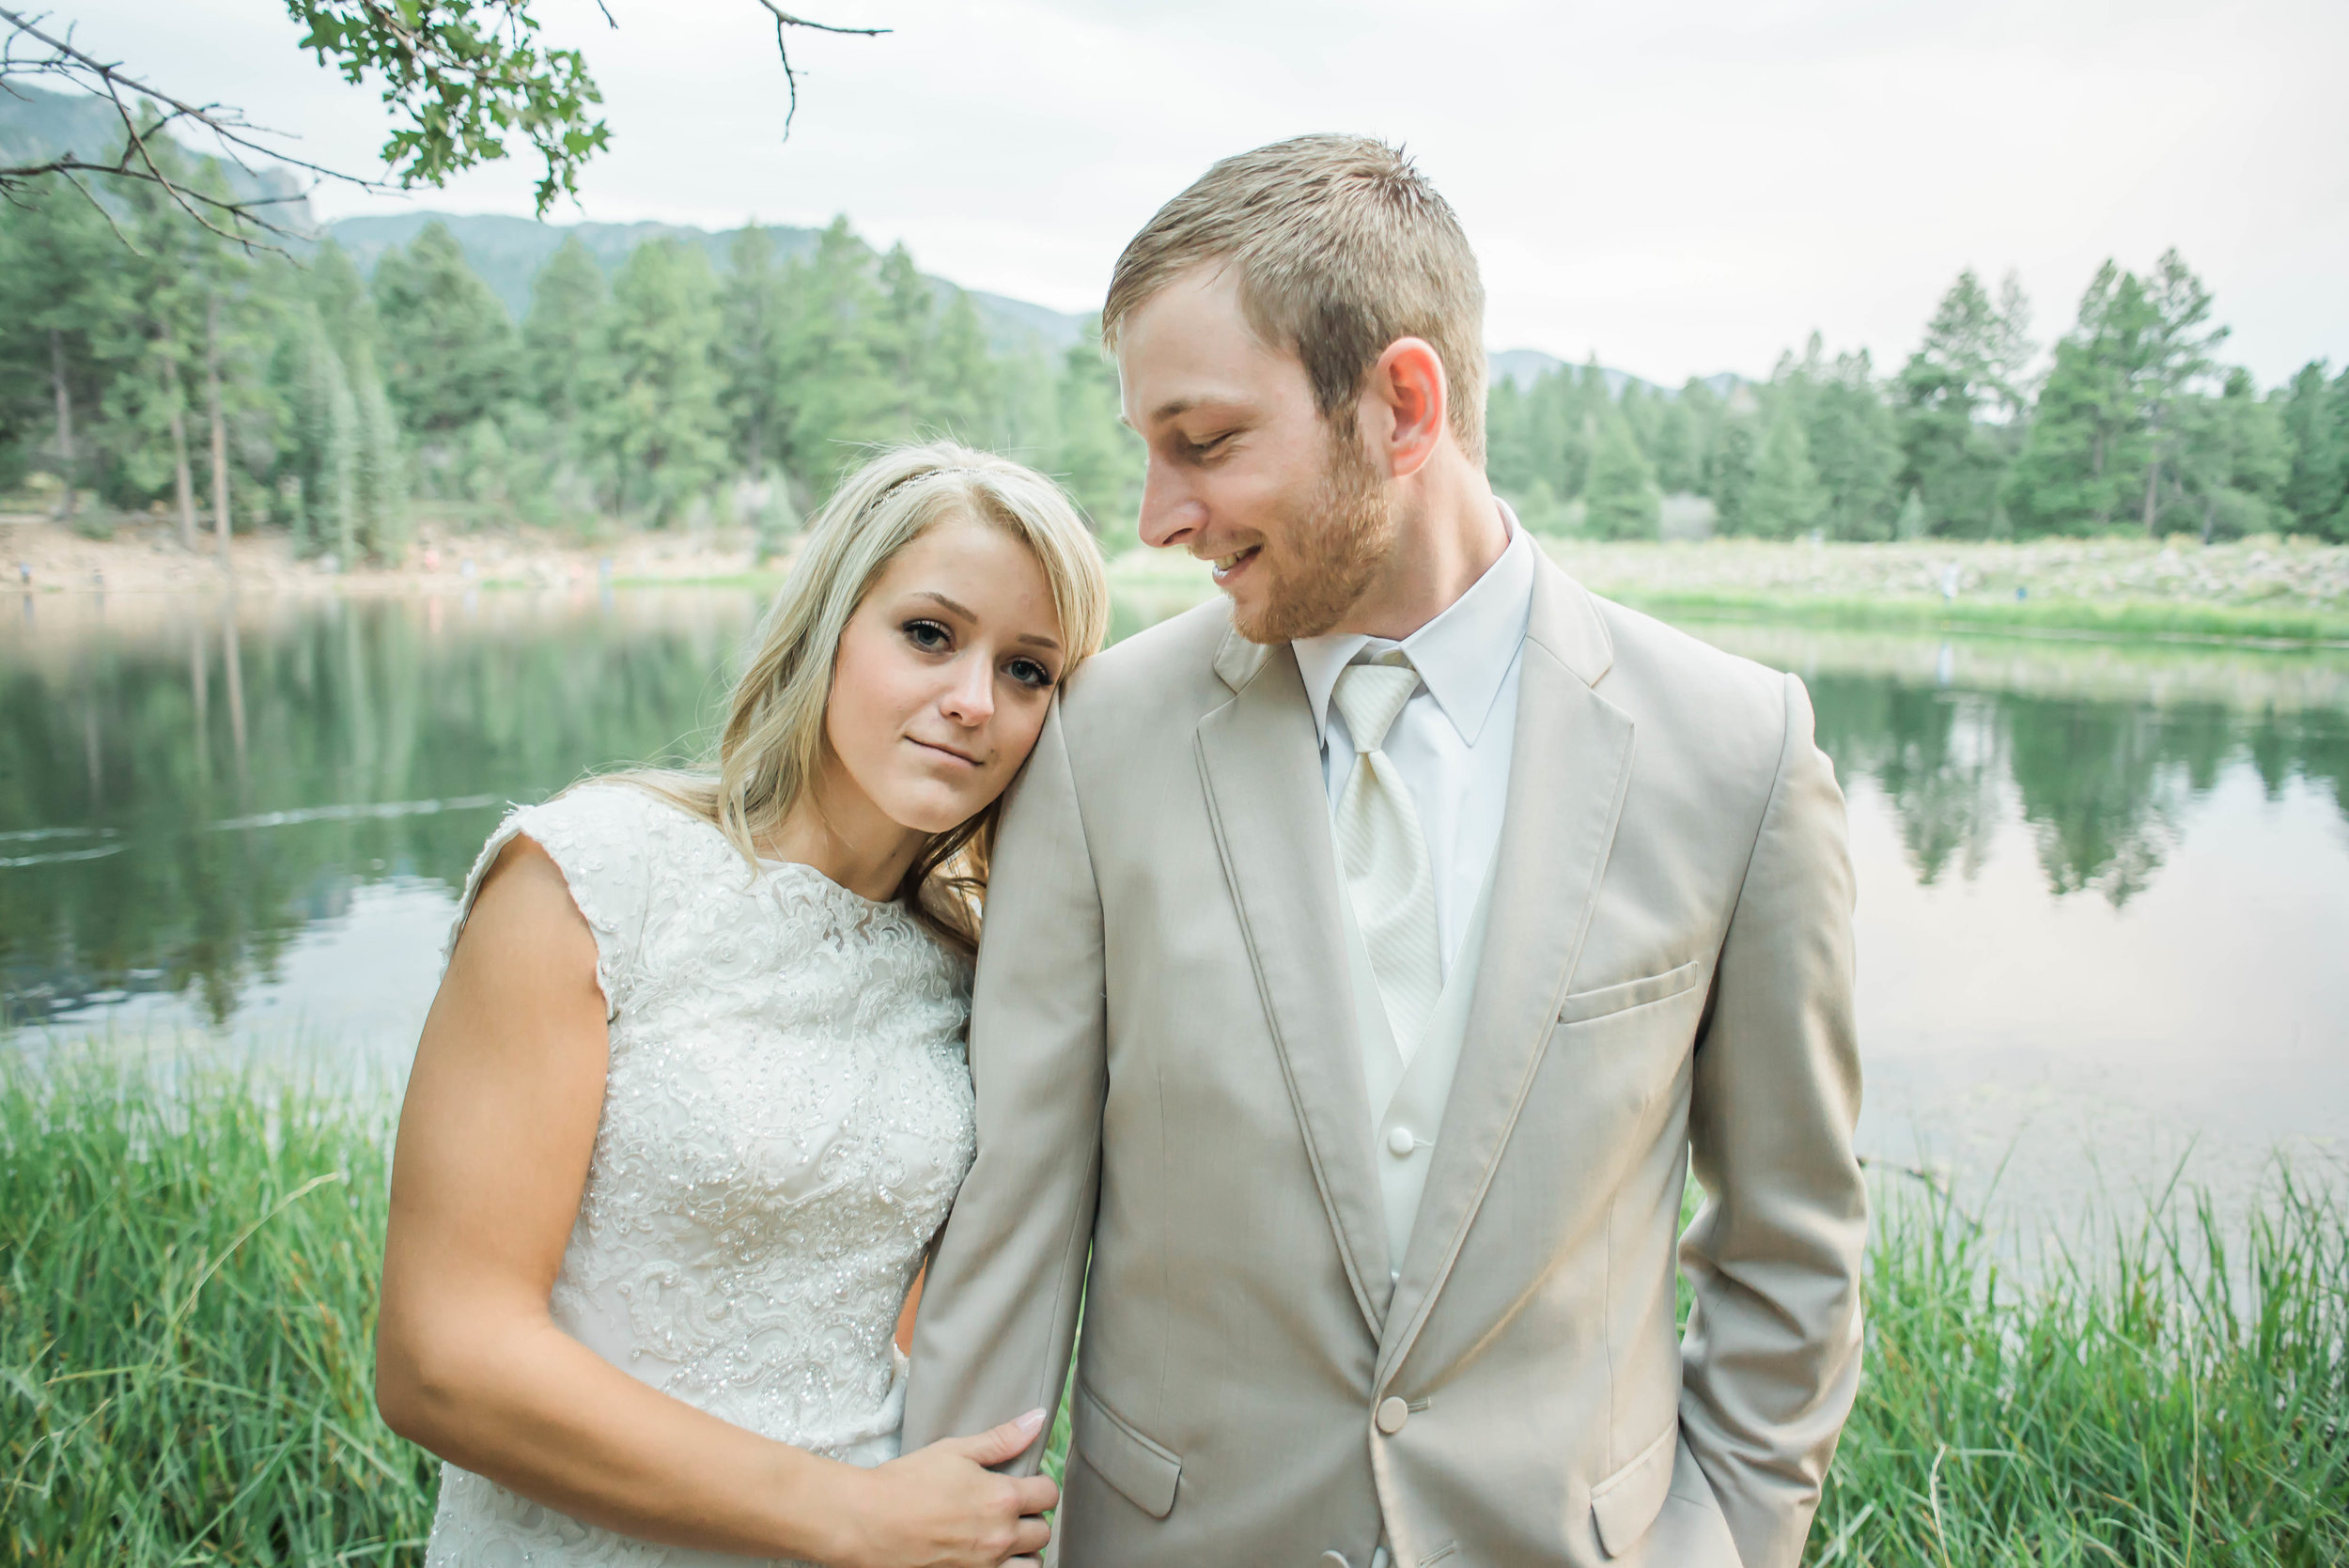 DANIEL+LACI-Sadie_Banks_Photography-30.jpg